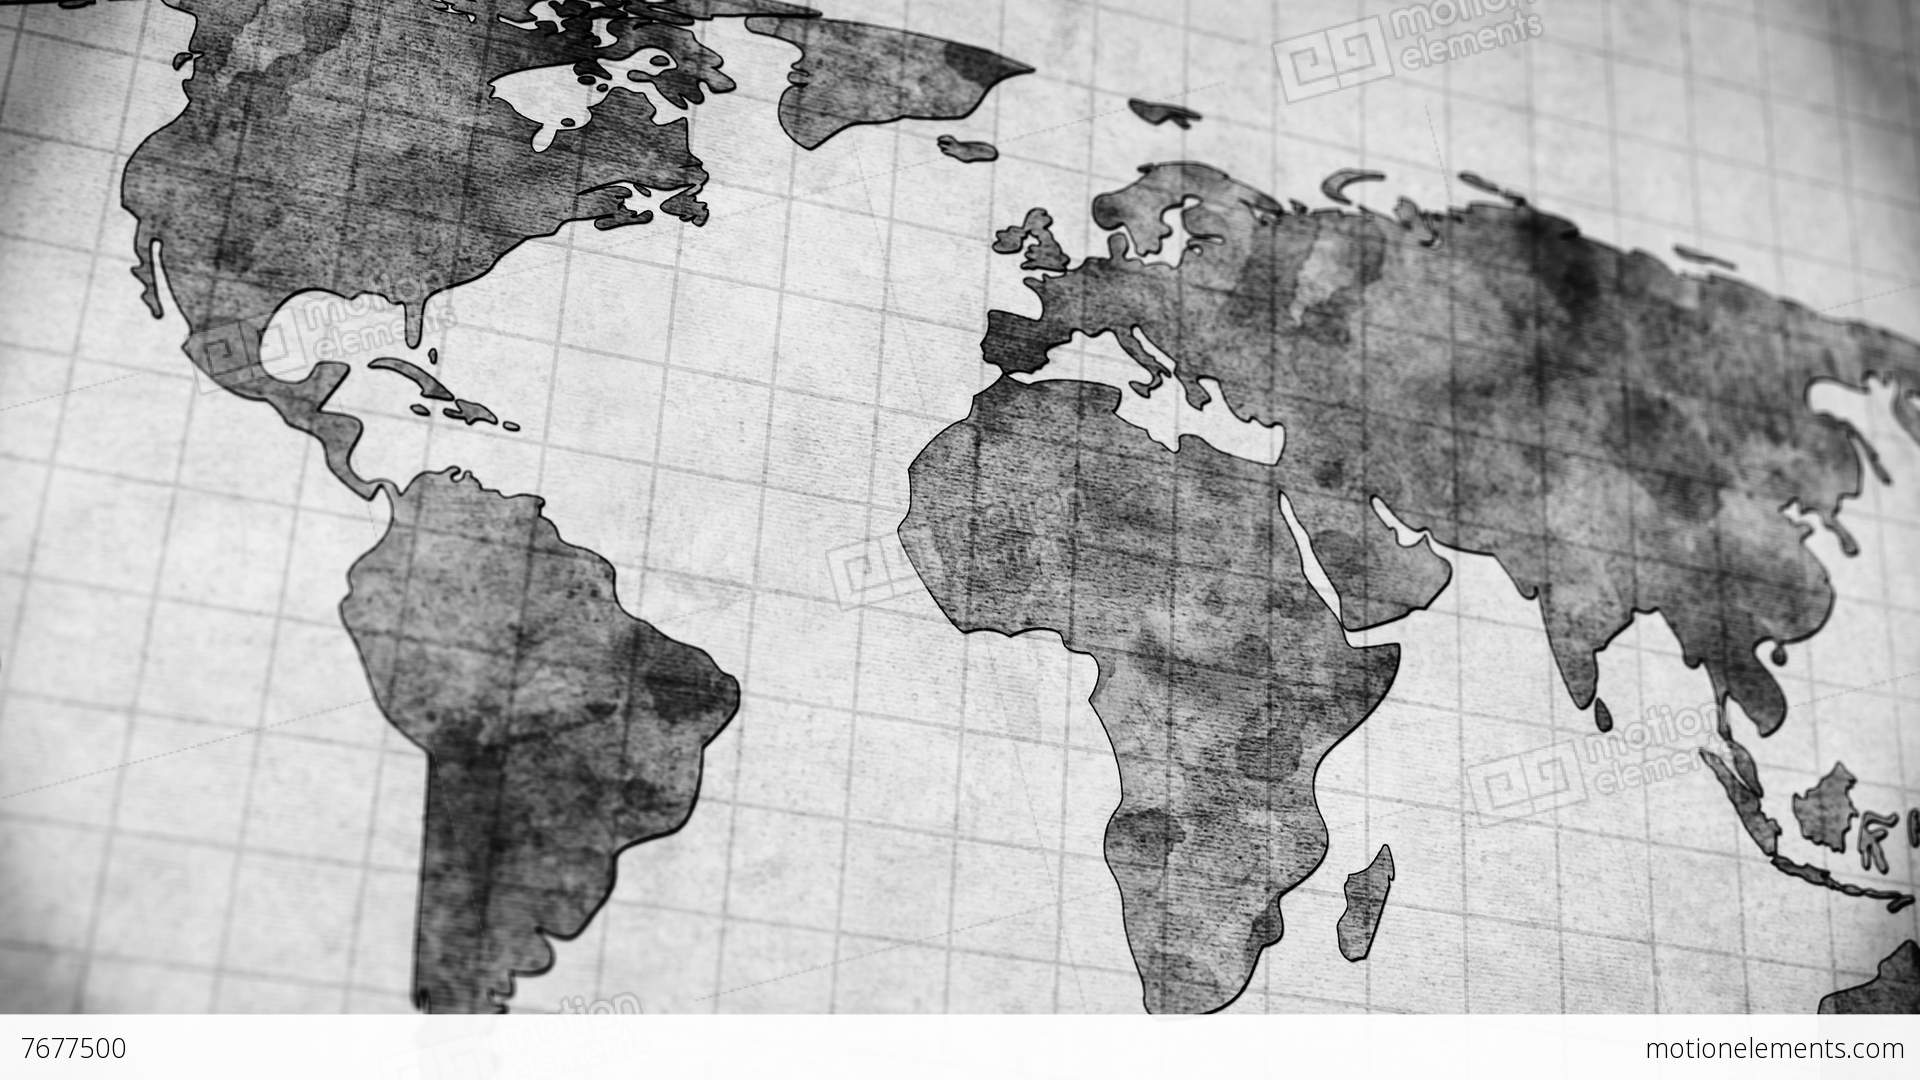 Vintage world map loopable panning animation 4k 4096x2304 stock vintage world map loopable panning animation 4k 4096x2304 stock video footage gumiabroncs